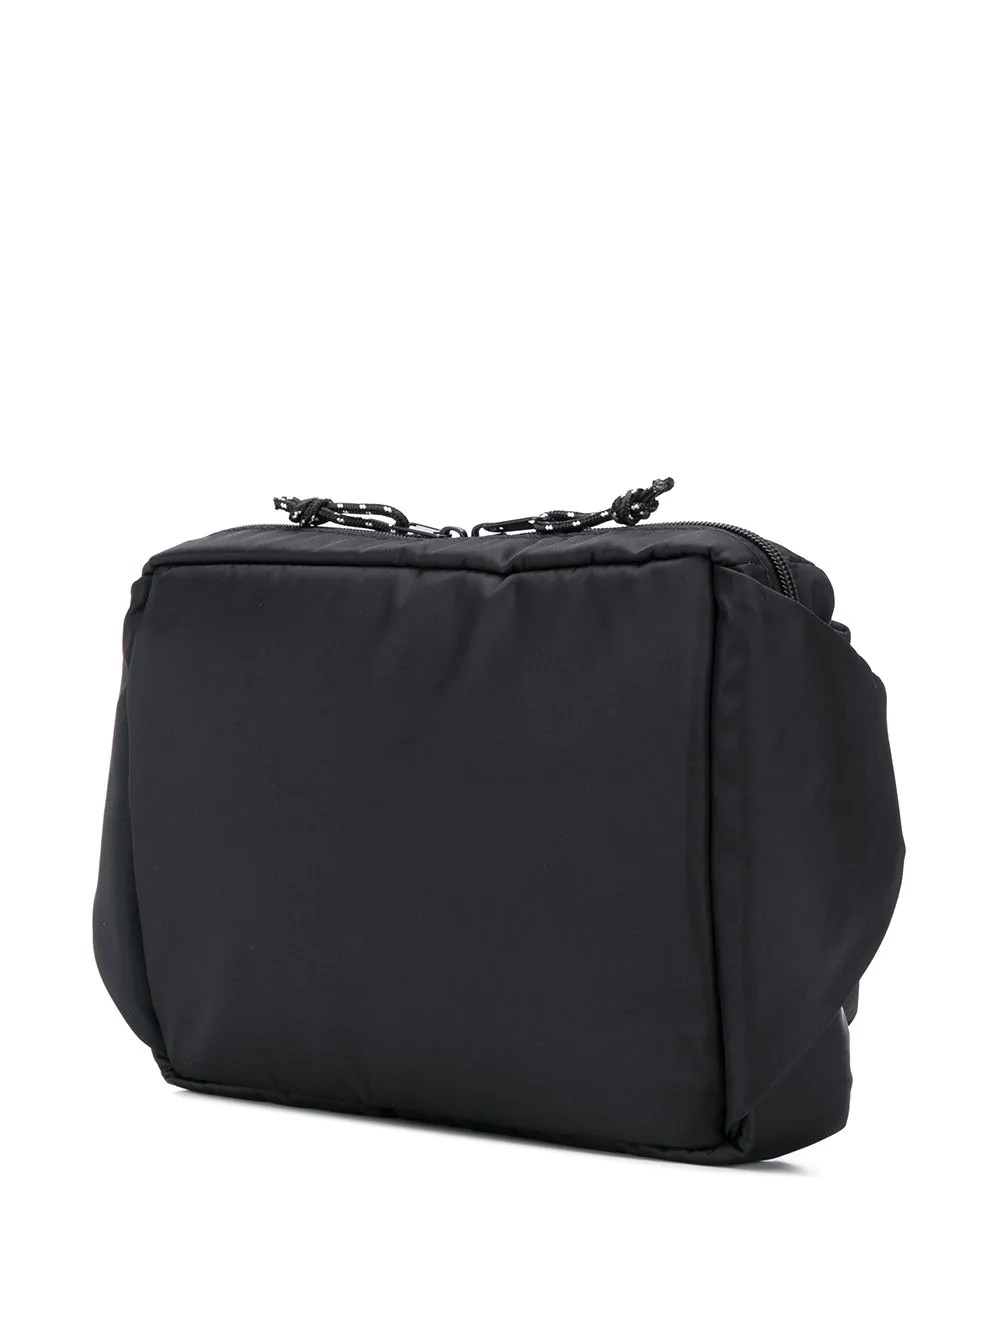 WOMAN`S BUM BAG